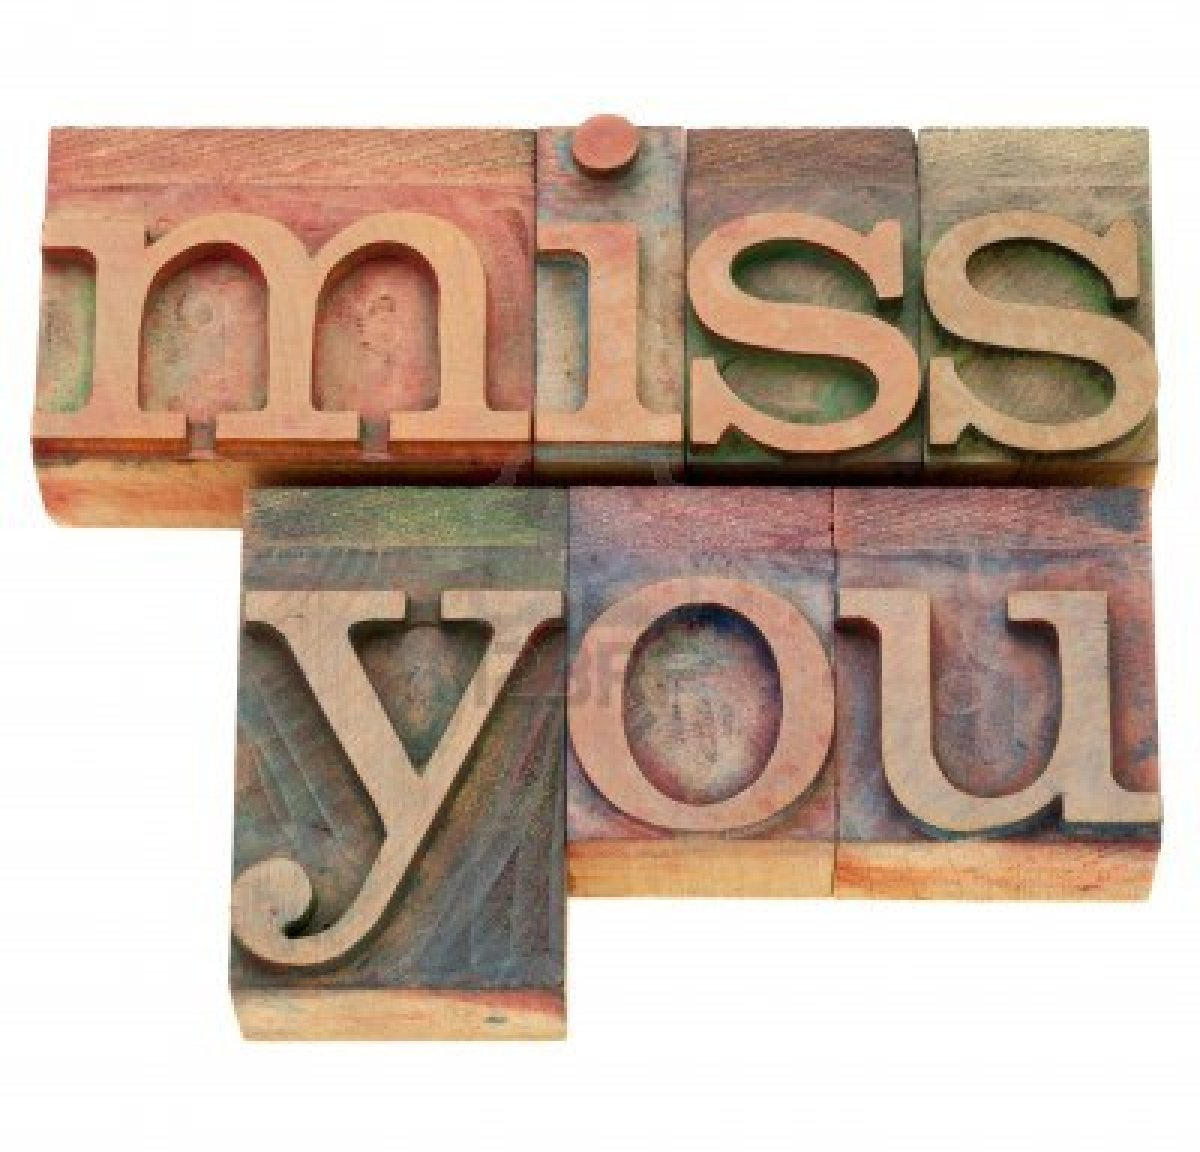 ... miss you graphics we miss you clip art i will miss you images we miss